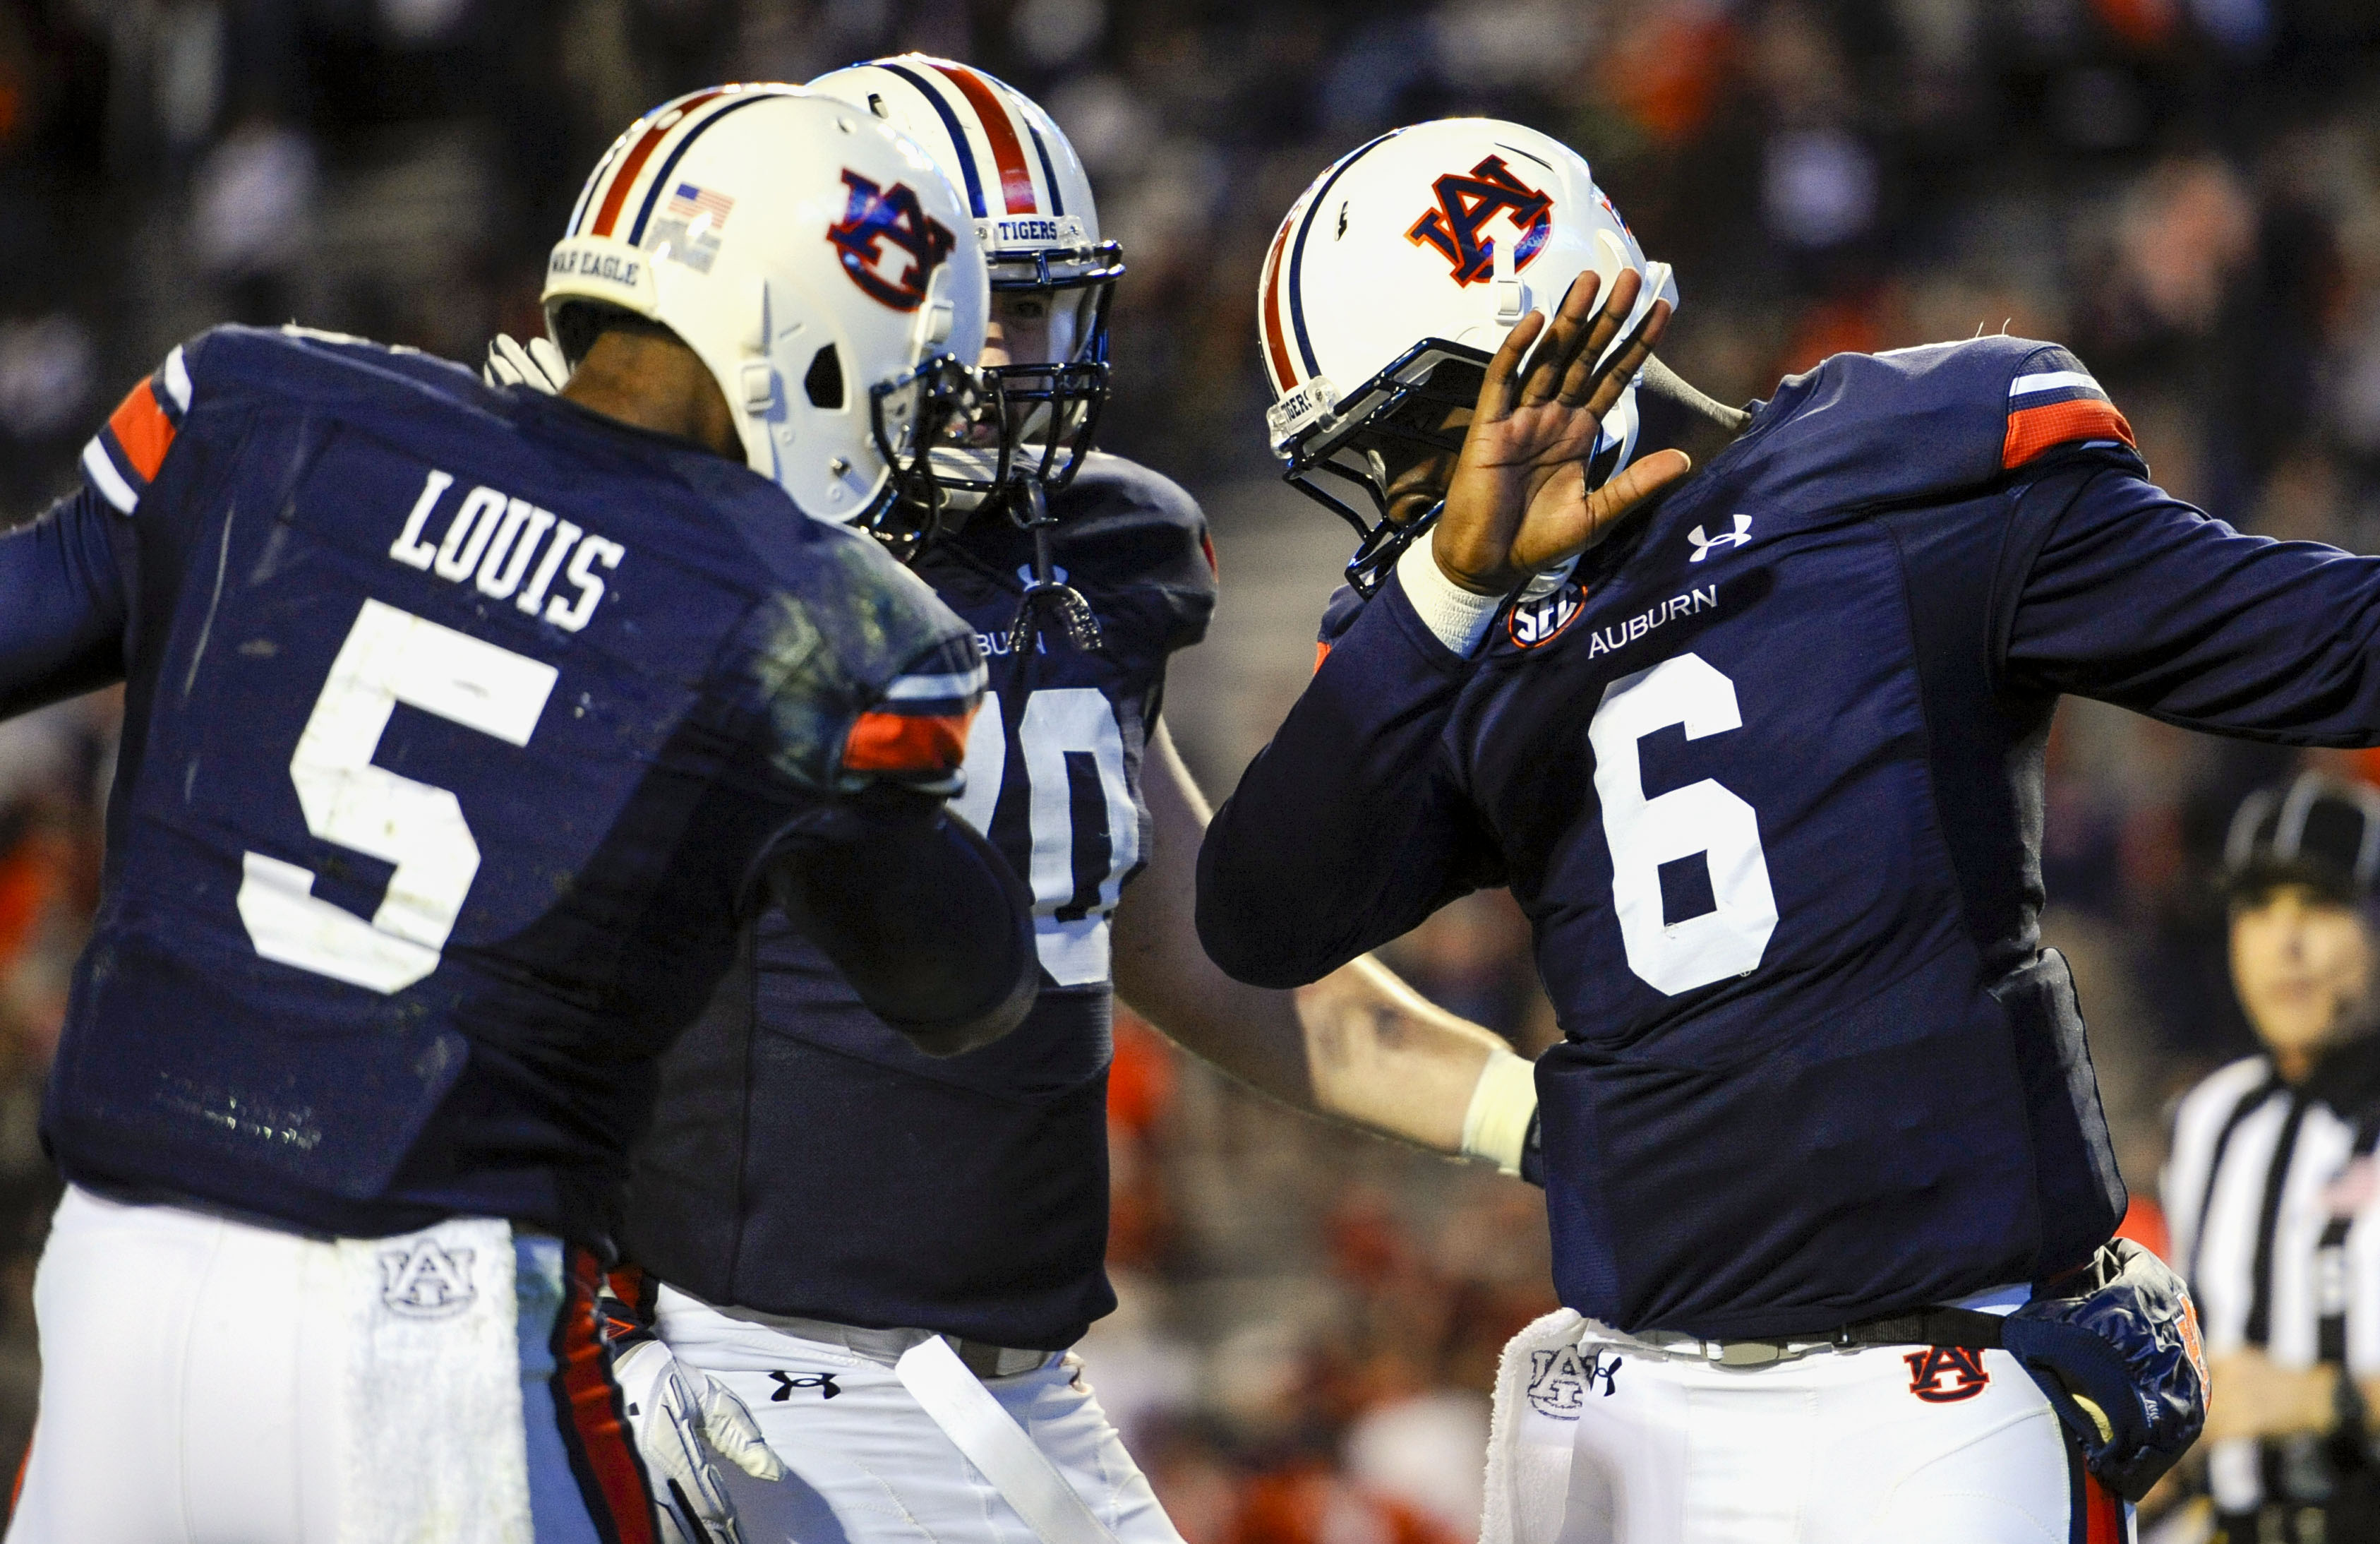 Photo: Tigers debuting new gloves in Iron Bowl with 'Sweet ...